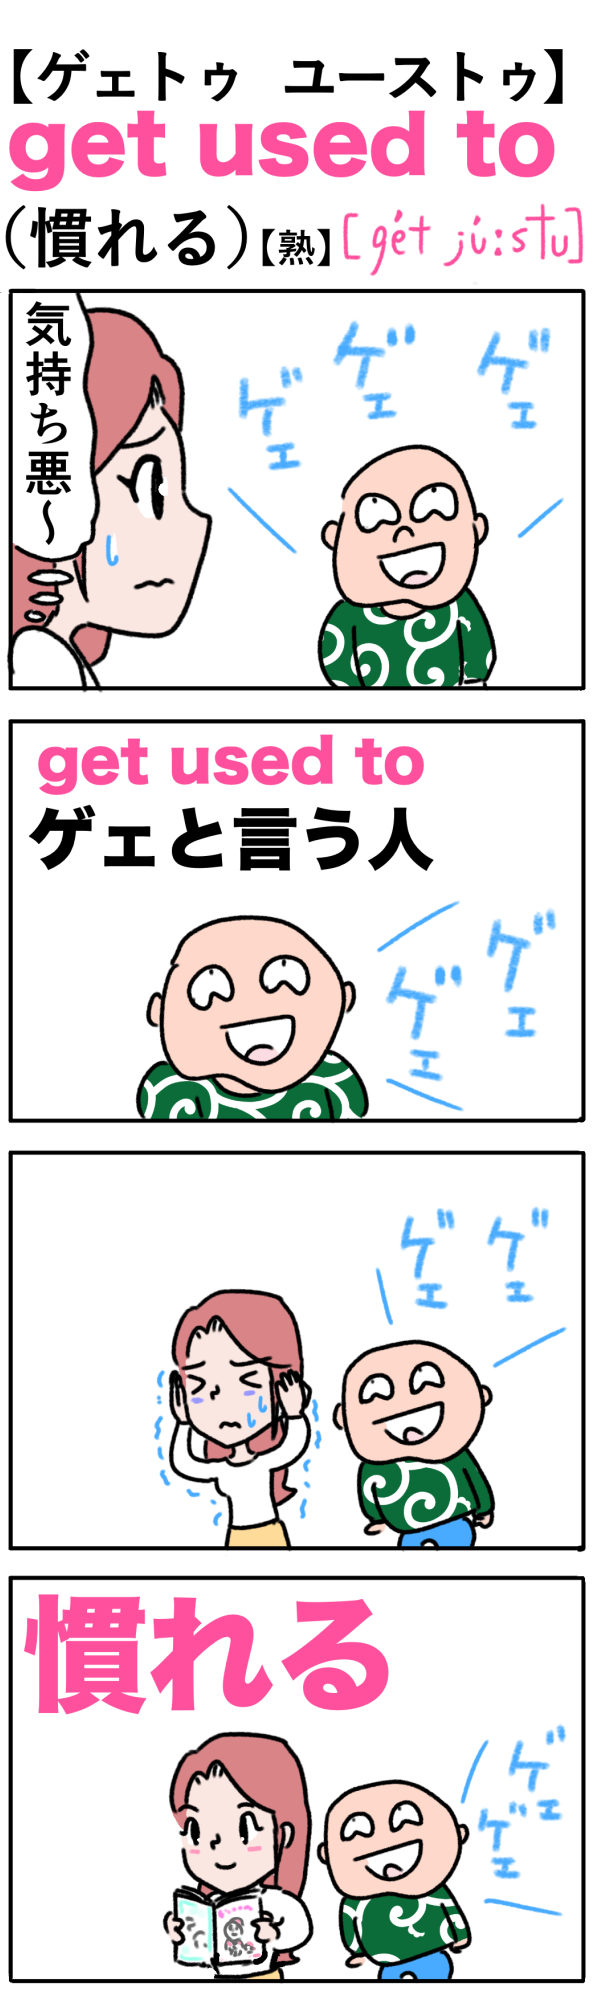 get used to(慣れる)の語呂合わせ英単語